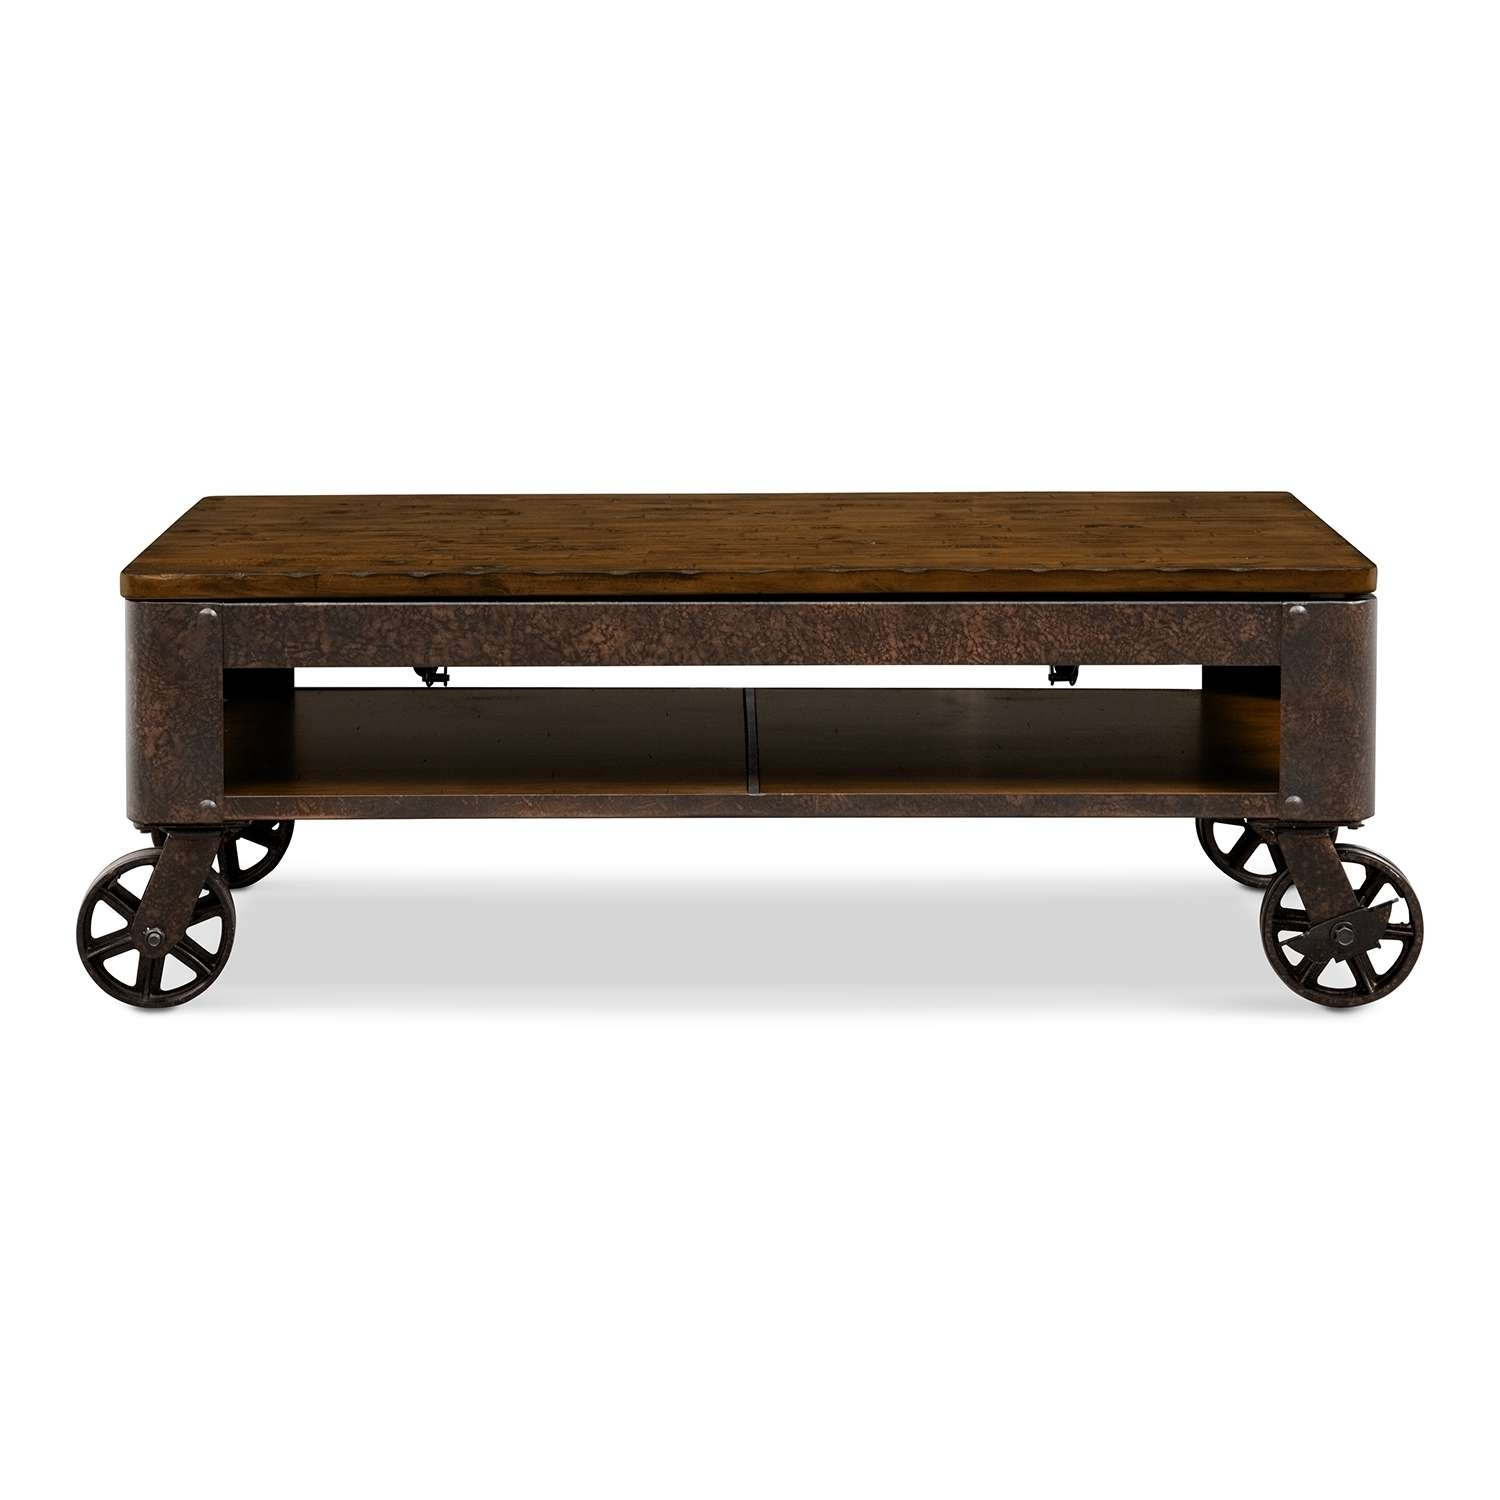 Popular Coffee Tables With Wheels Within Coffee Tables Ideas: Rural Traditional Coffee Table With Wheels (View 17 of 20)